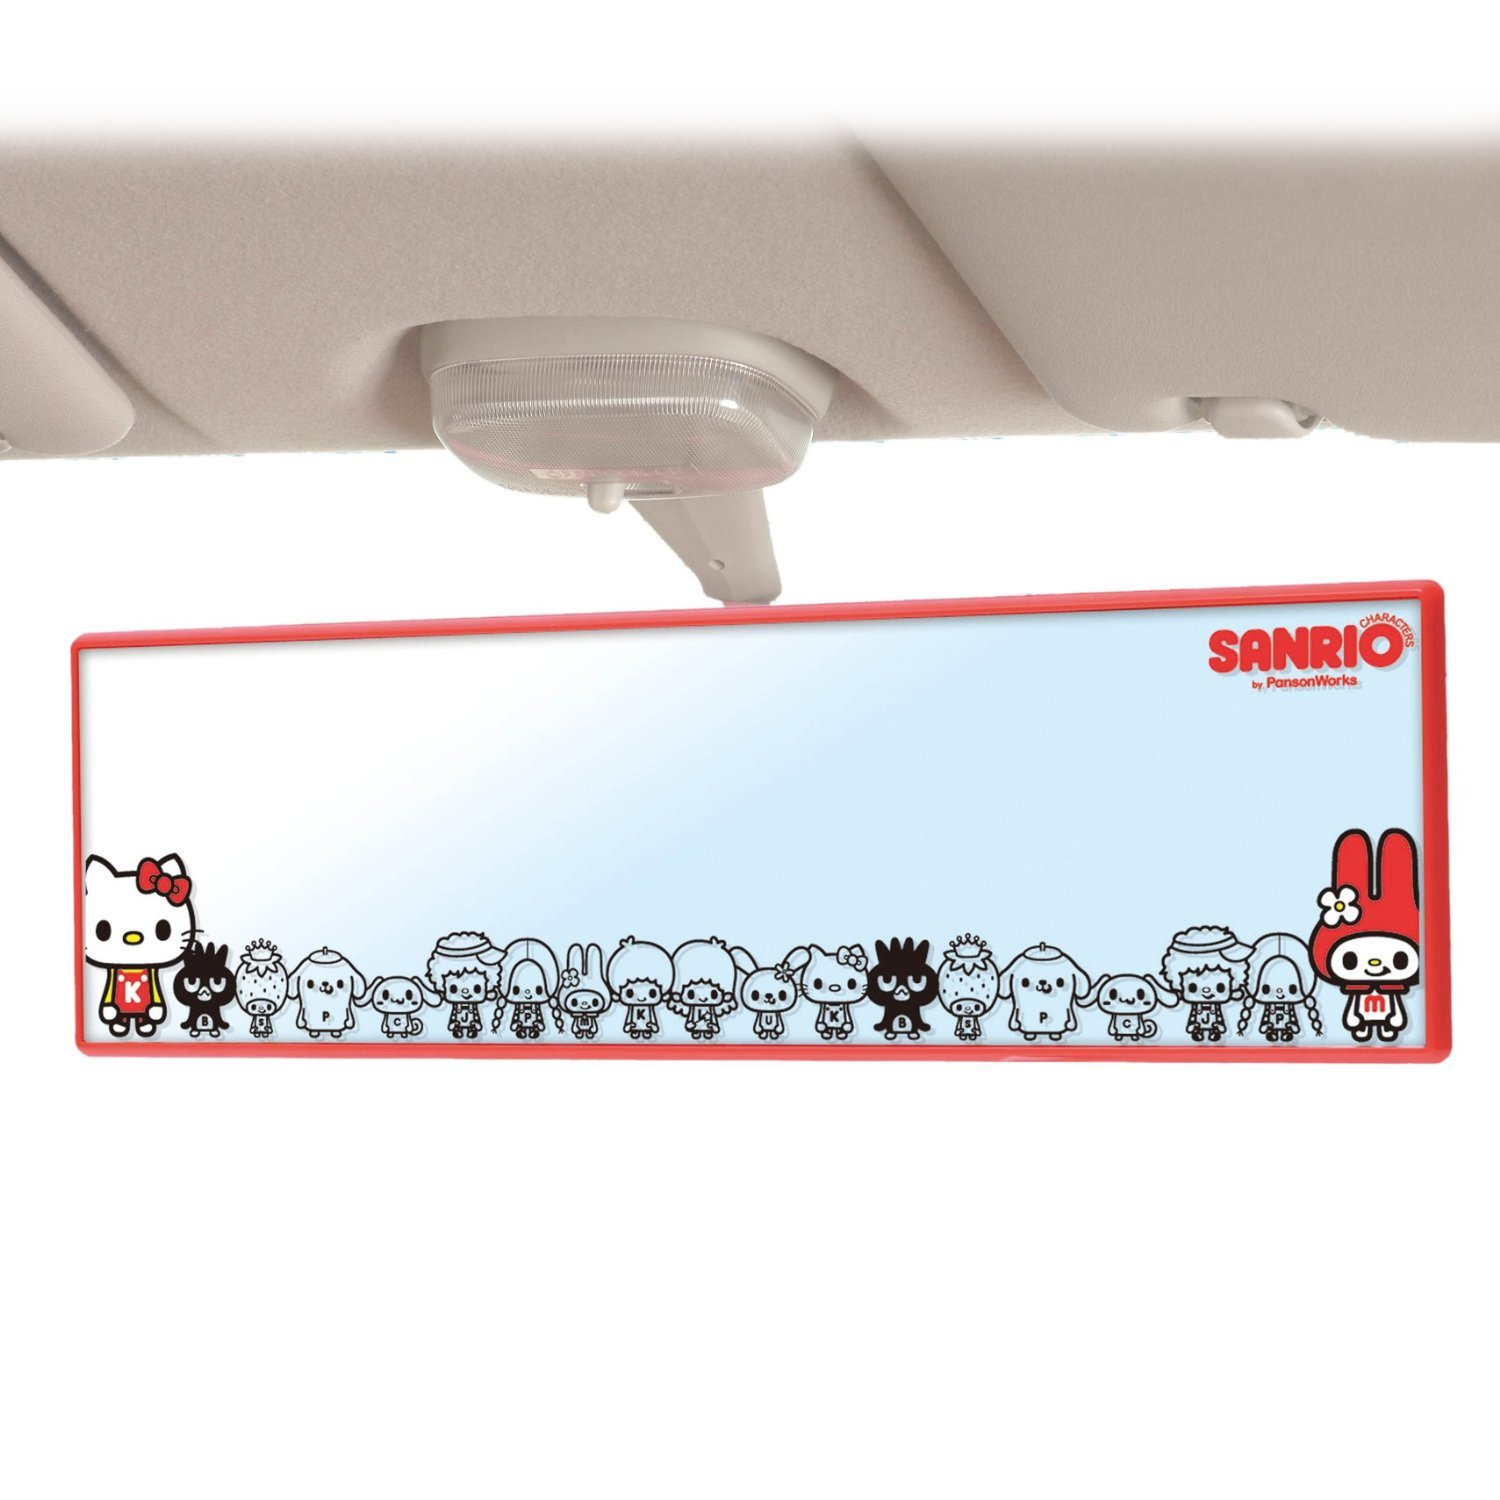 New Sanrio Characters Car Room mirror Cawaii KT411 From JAPAN Free Shipping